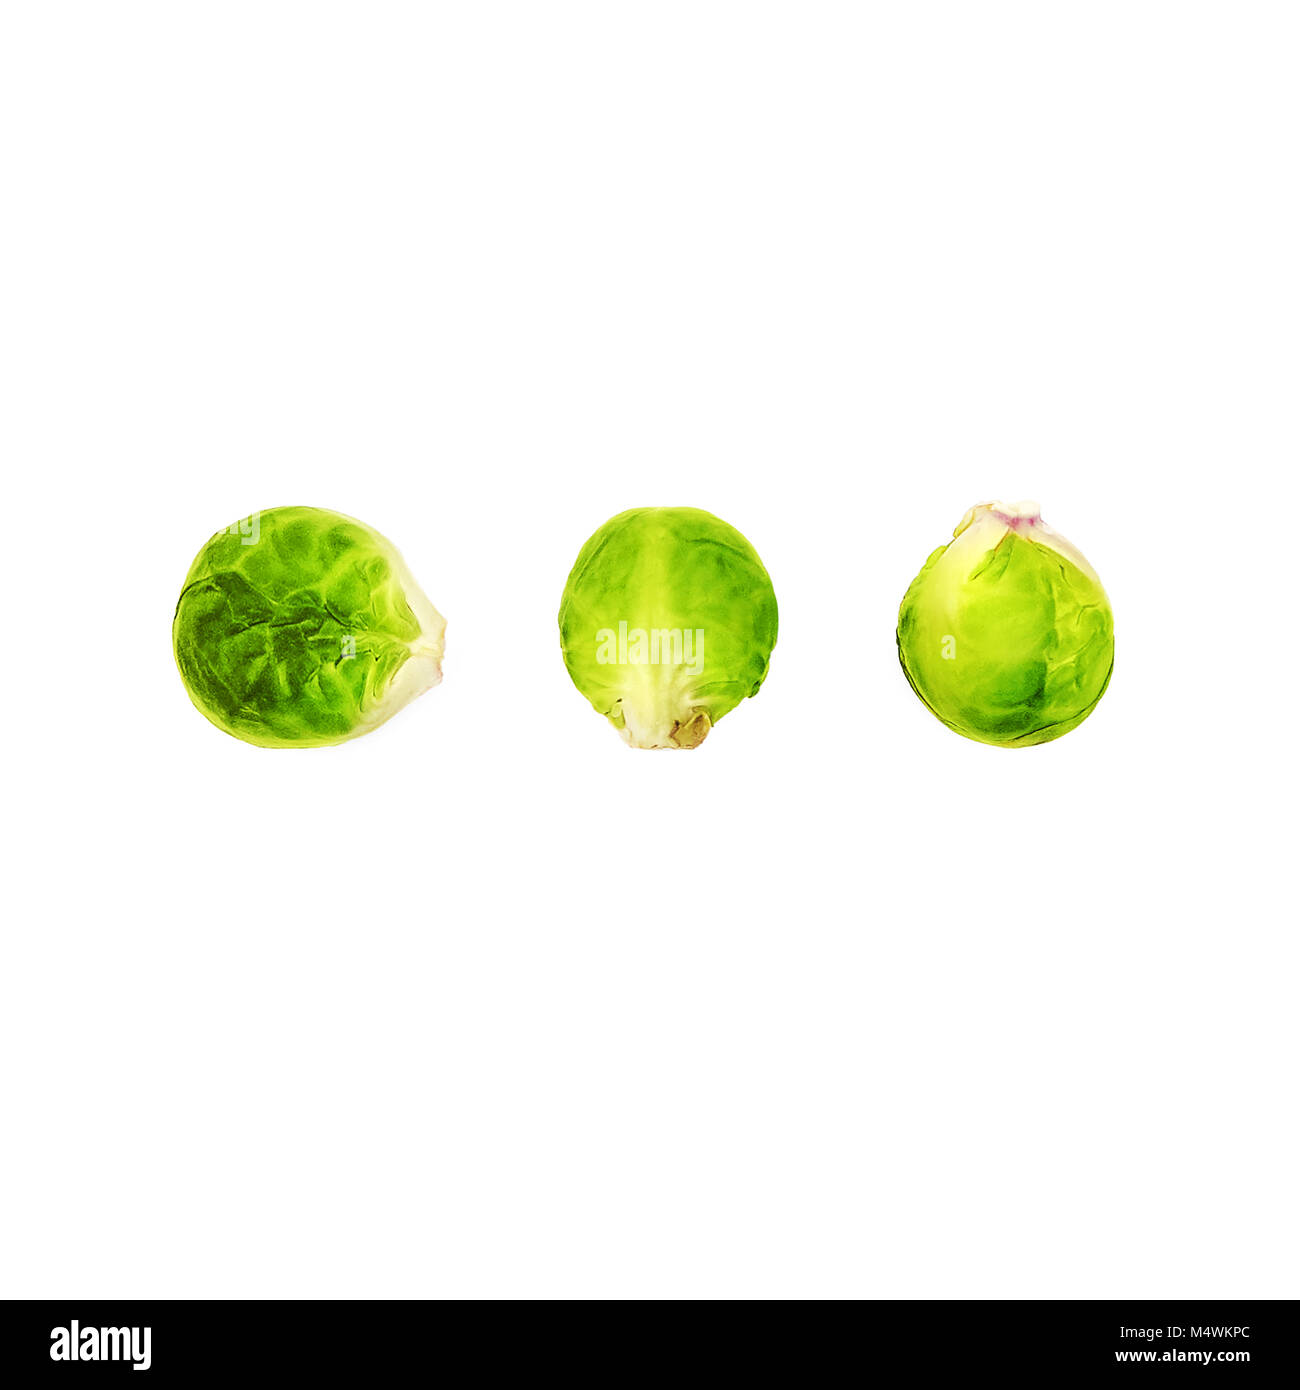 Brussels sprouts Top view Three fruits of brussels sprouts are lying in a row on a white background Flat lay photo - Stock Image